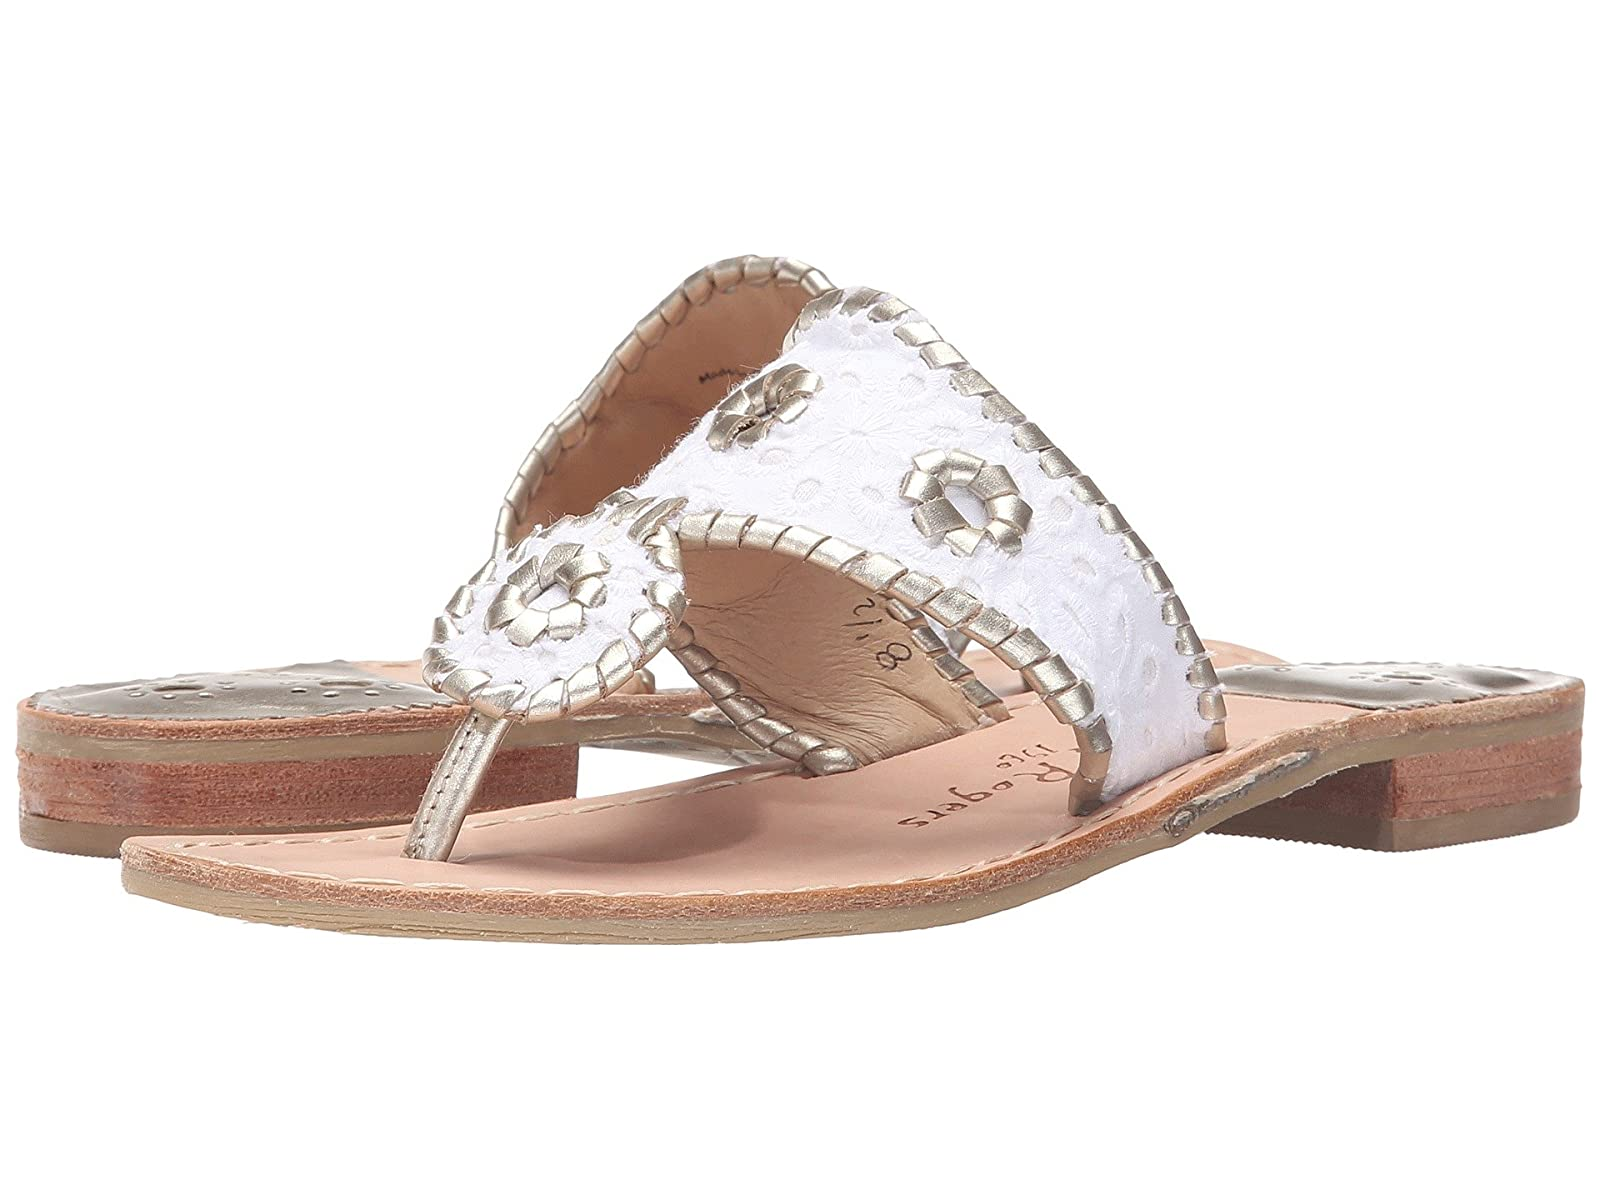 Jack Rogers Jacks EyeletCheap and distinctive eye-catching shoes